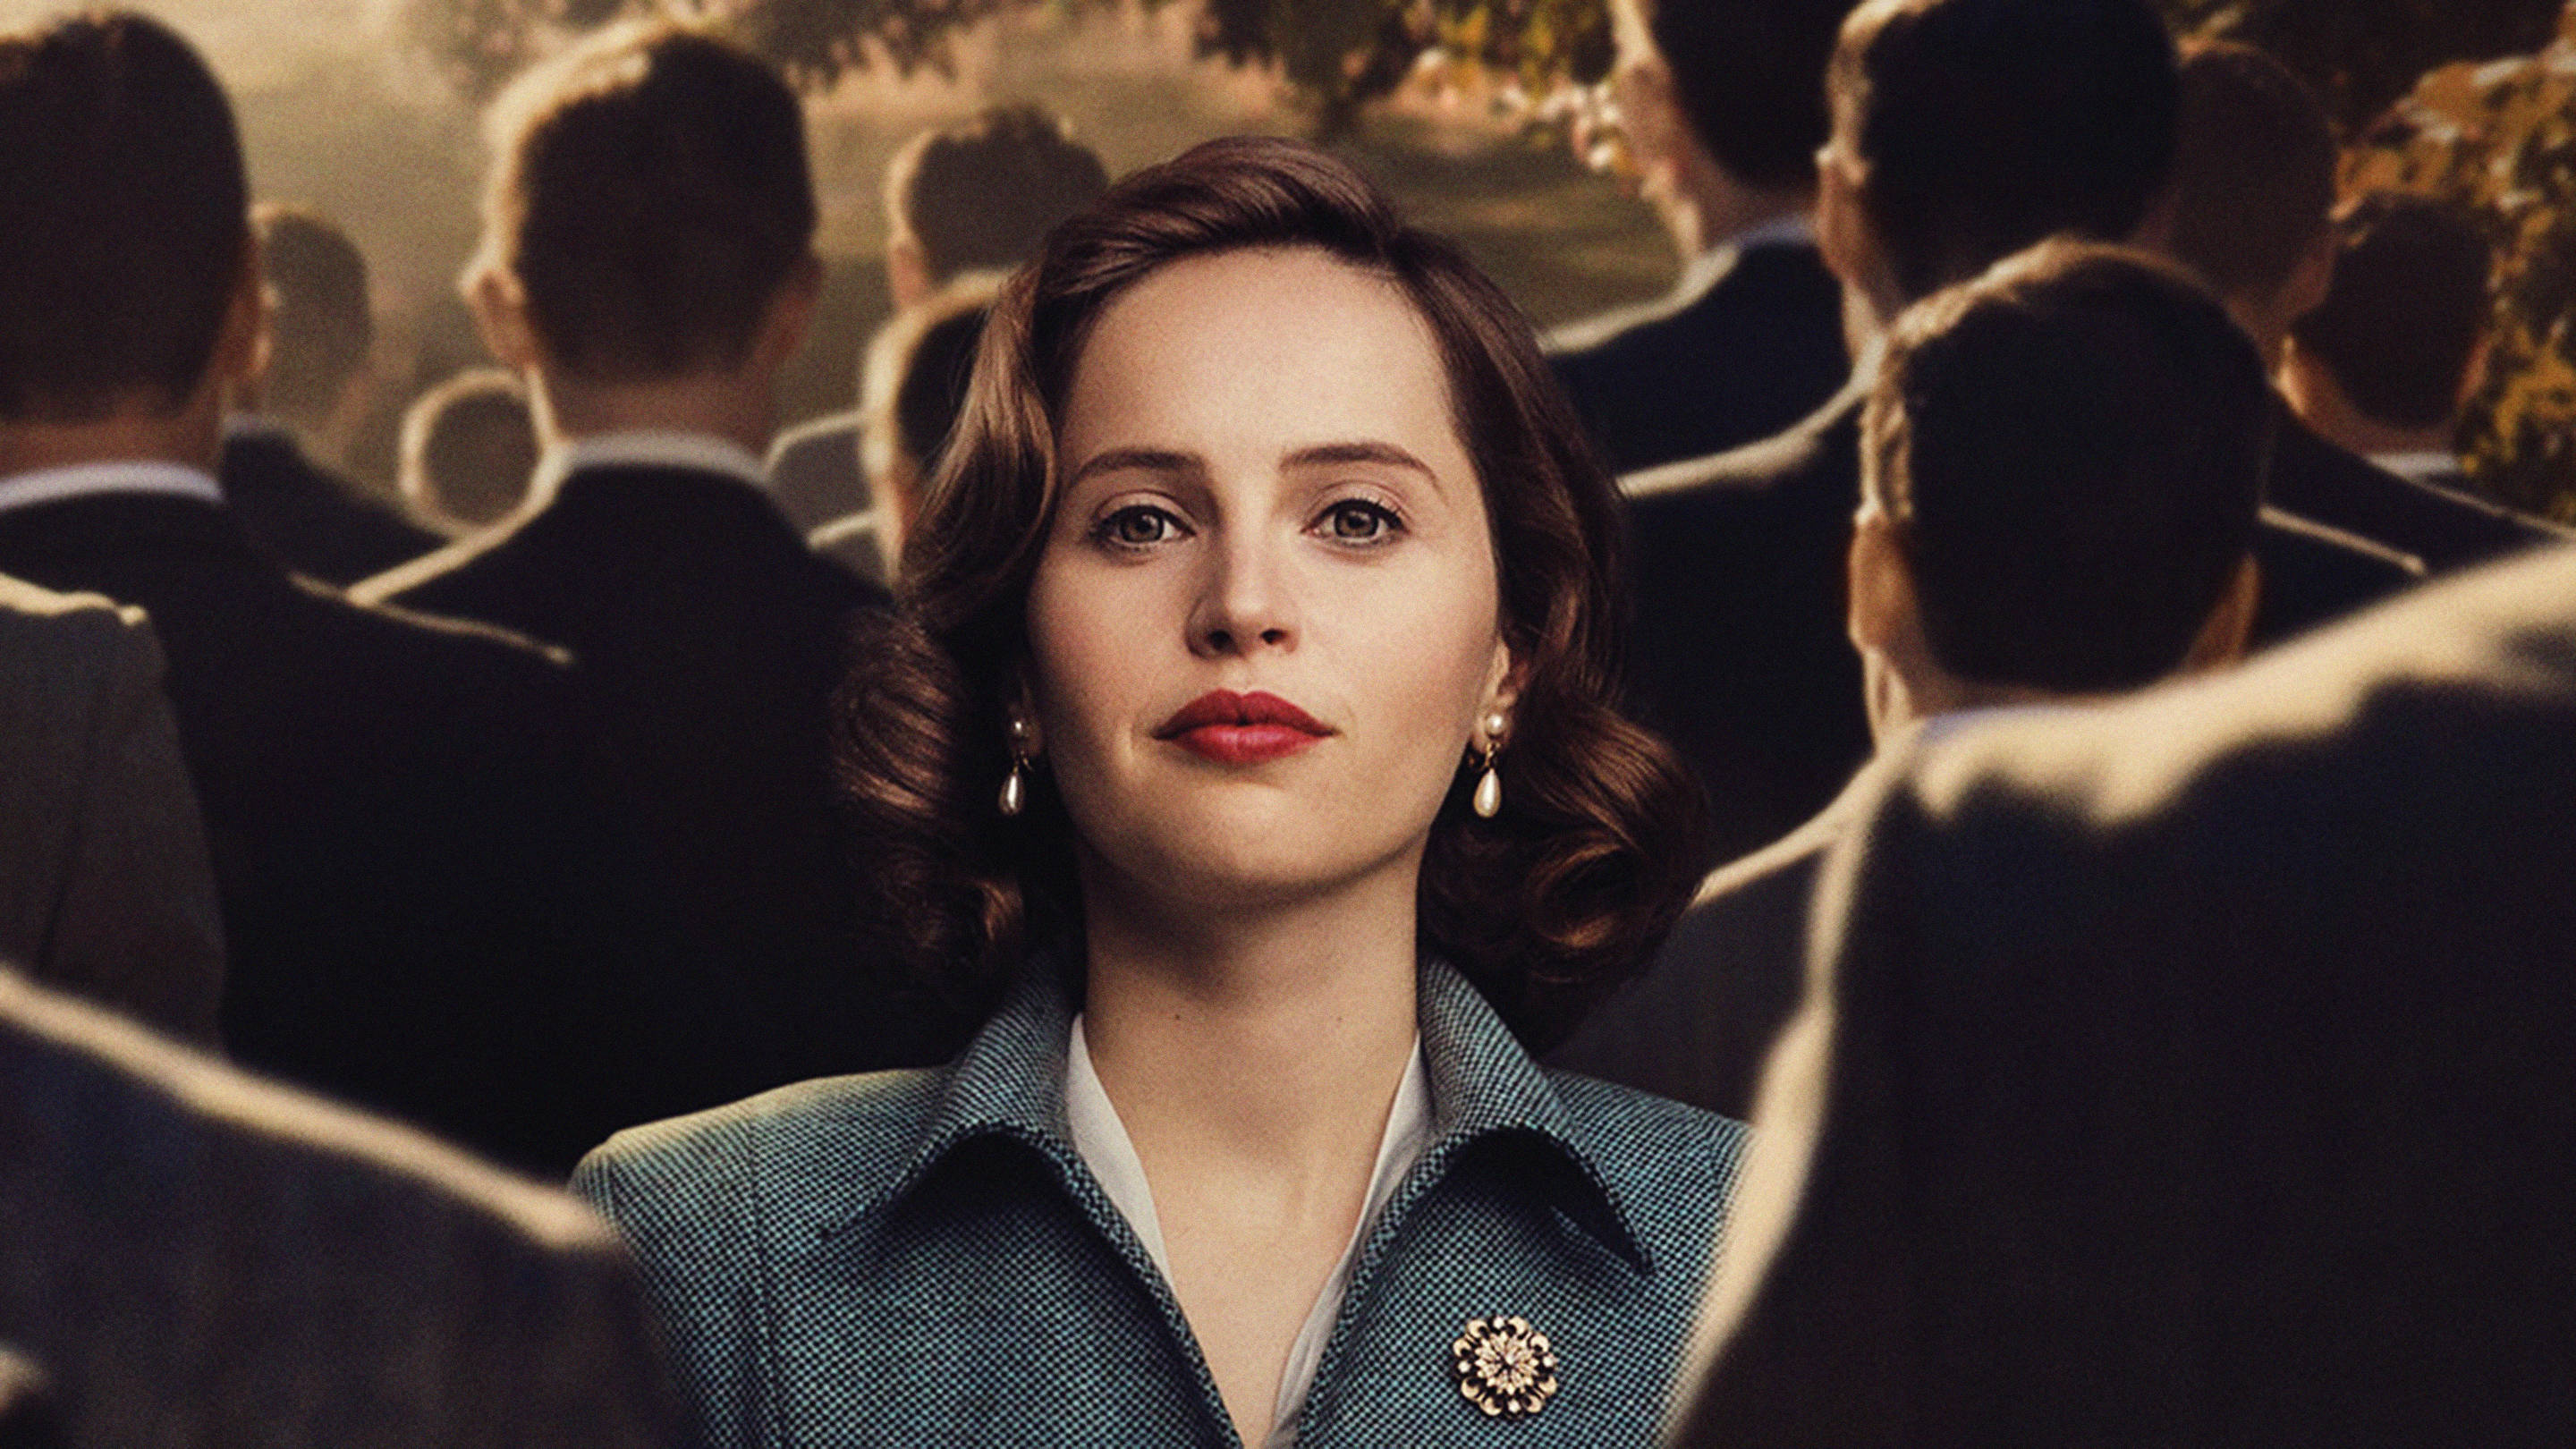 Felicity Jones as Ruth Bader Ginsburg in 'On the Basis of Sex'